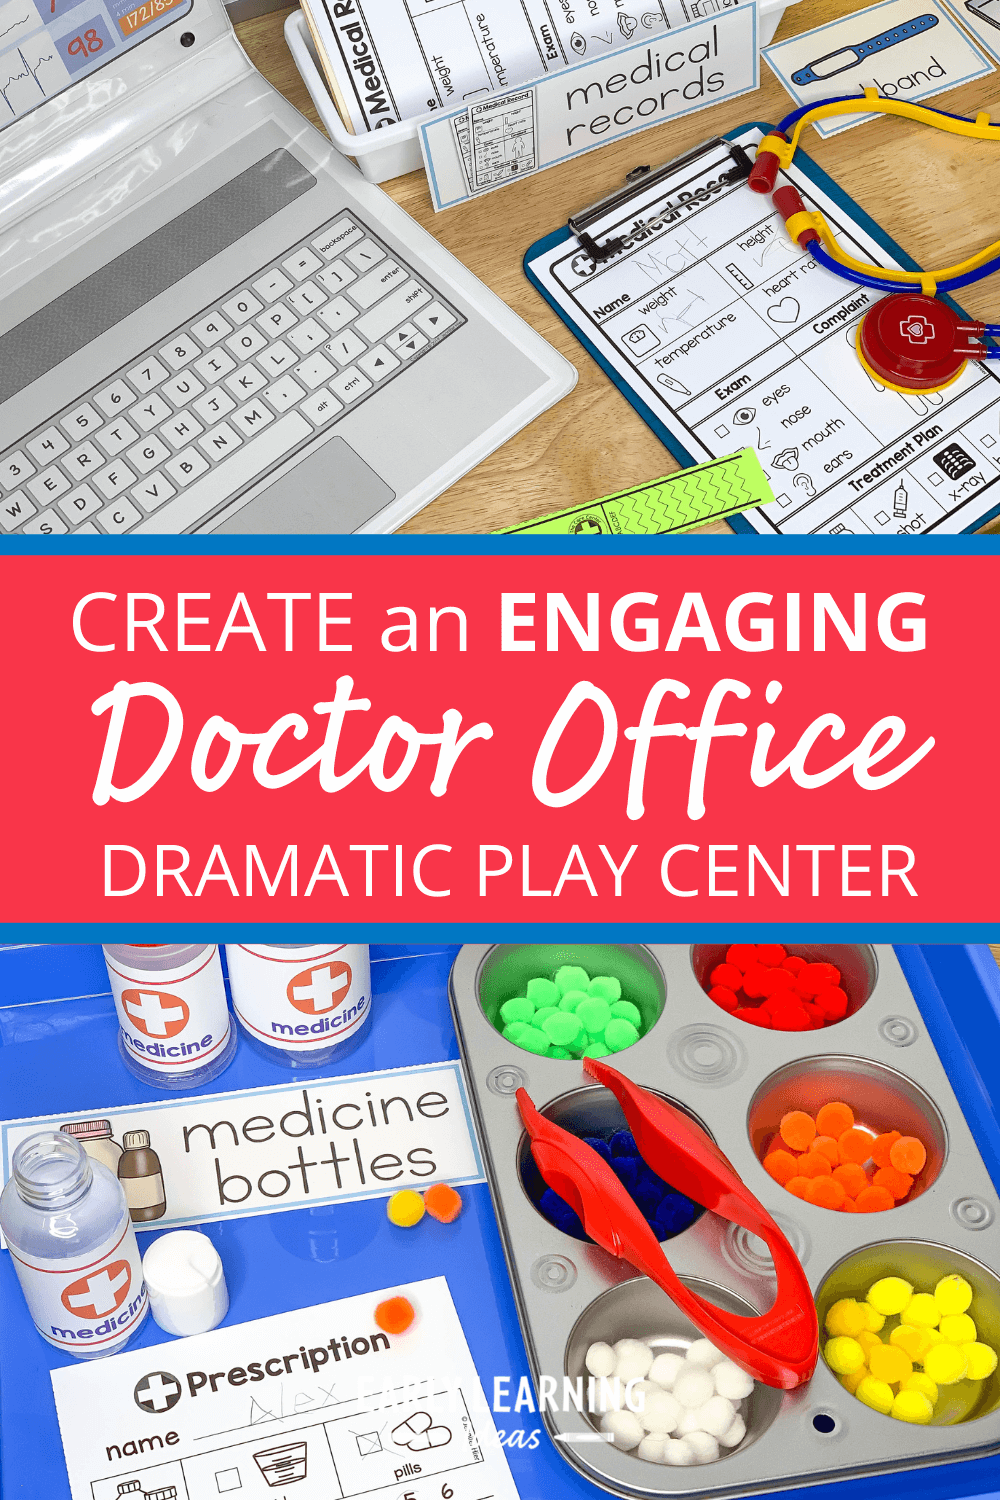 How to Make an Exciting Doctor Dramatic Play Area